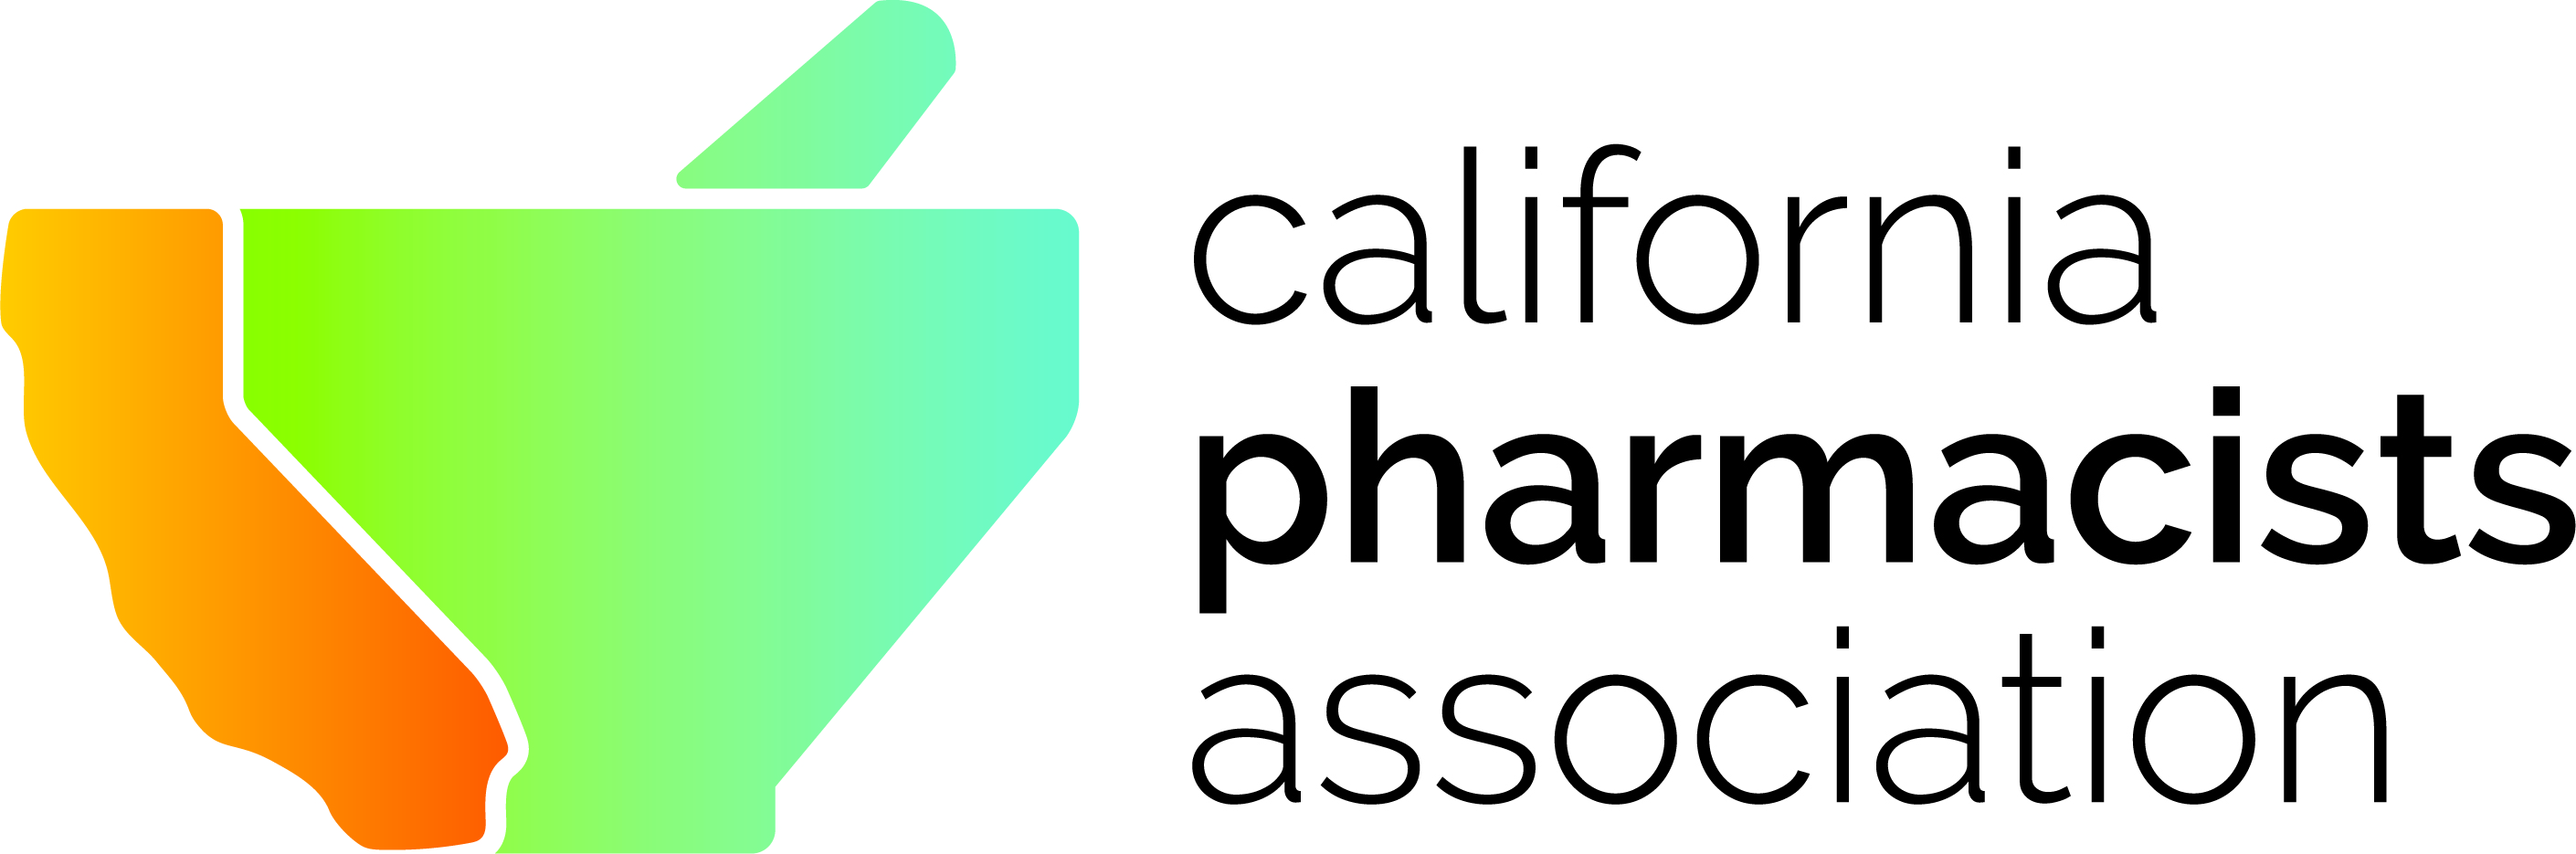 Recent Jobs - California Pharmacists Association